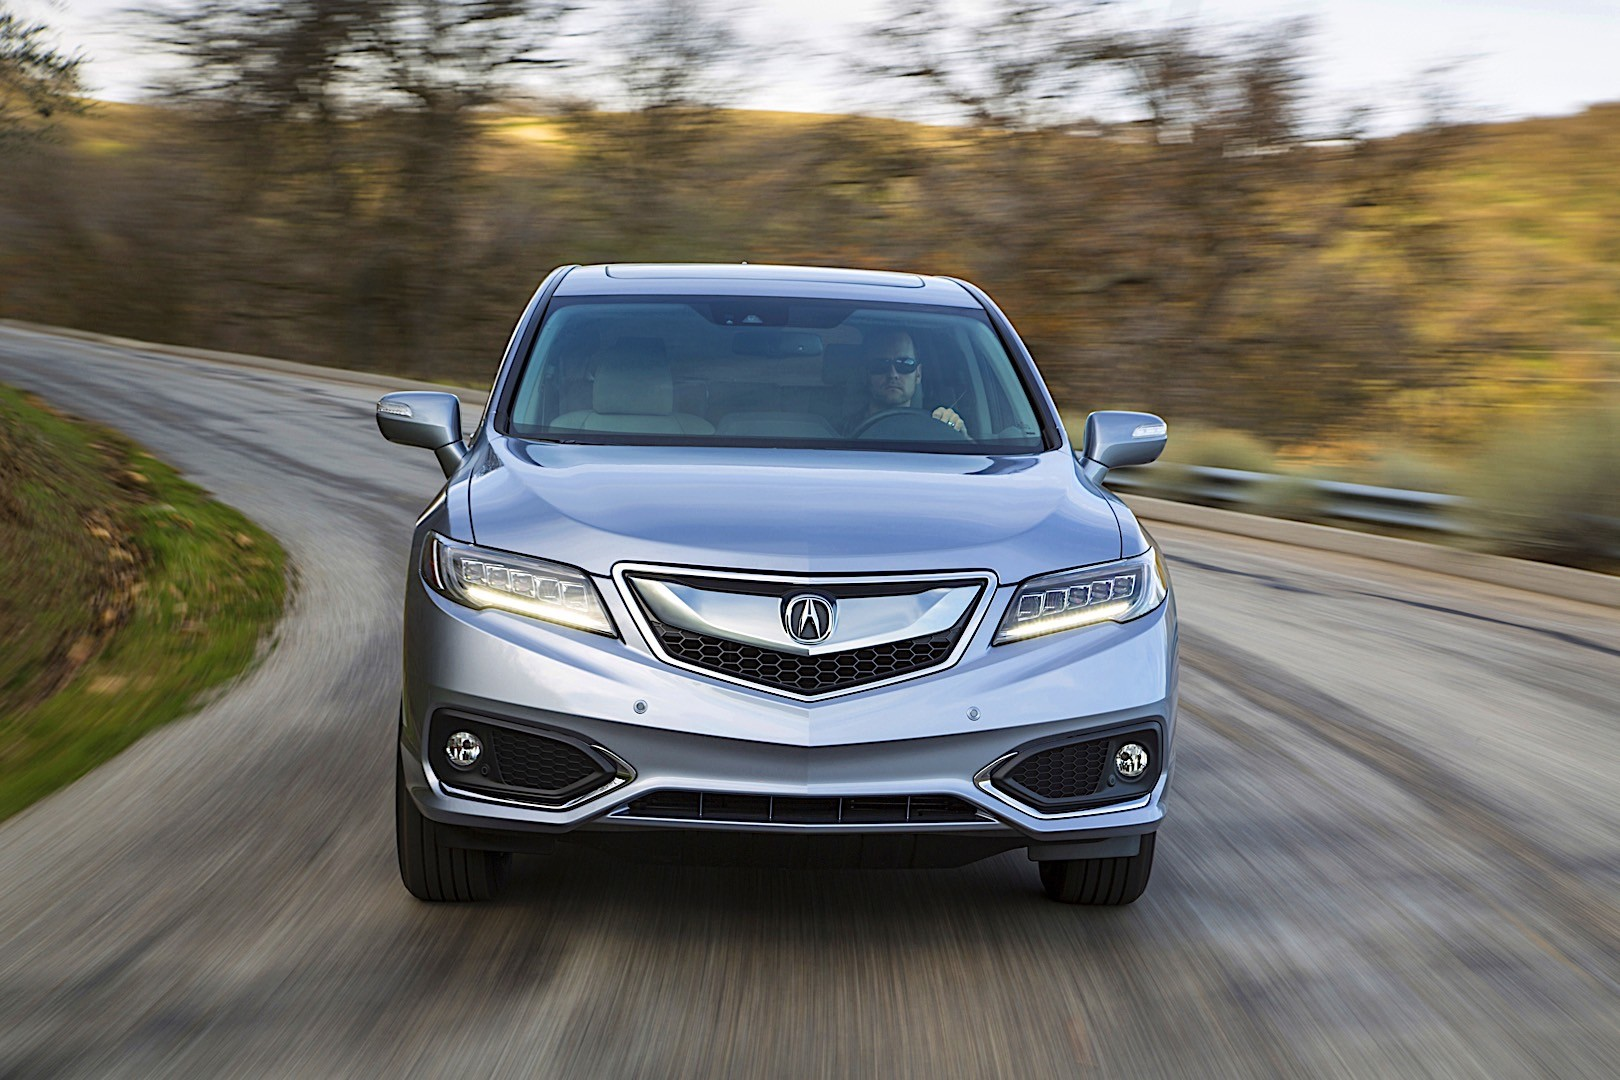 m rdx sale tropolitain amazing at for gravel acura demos